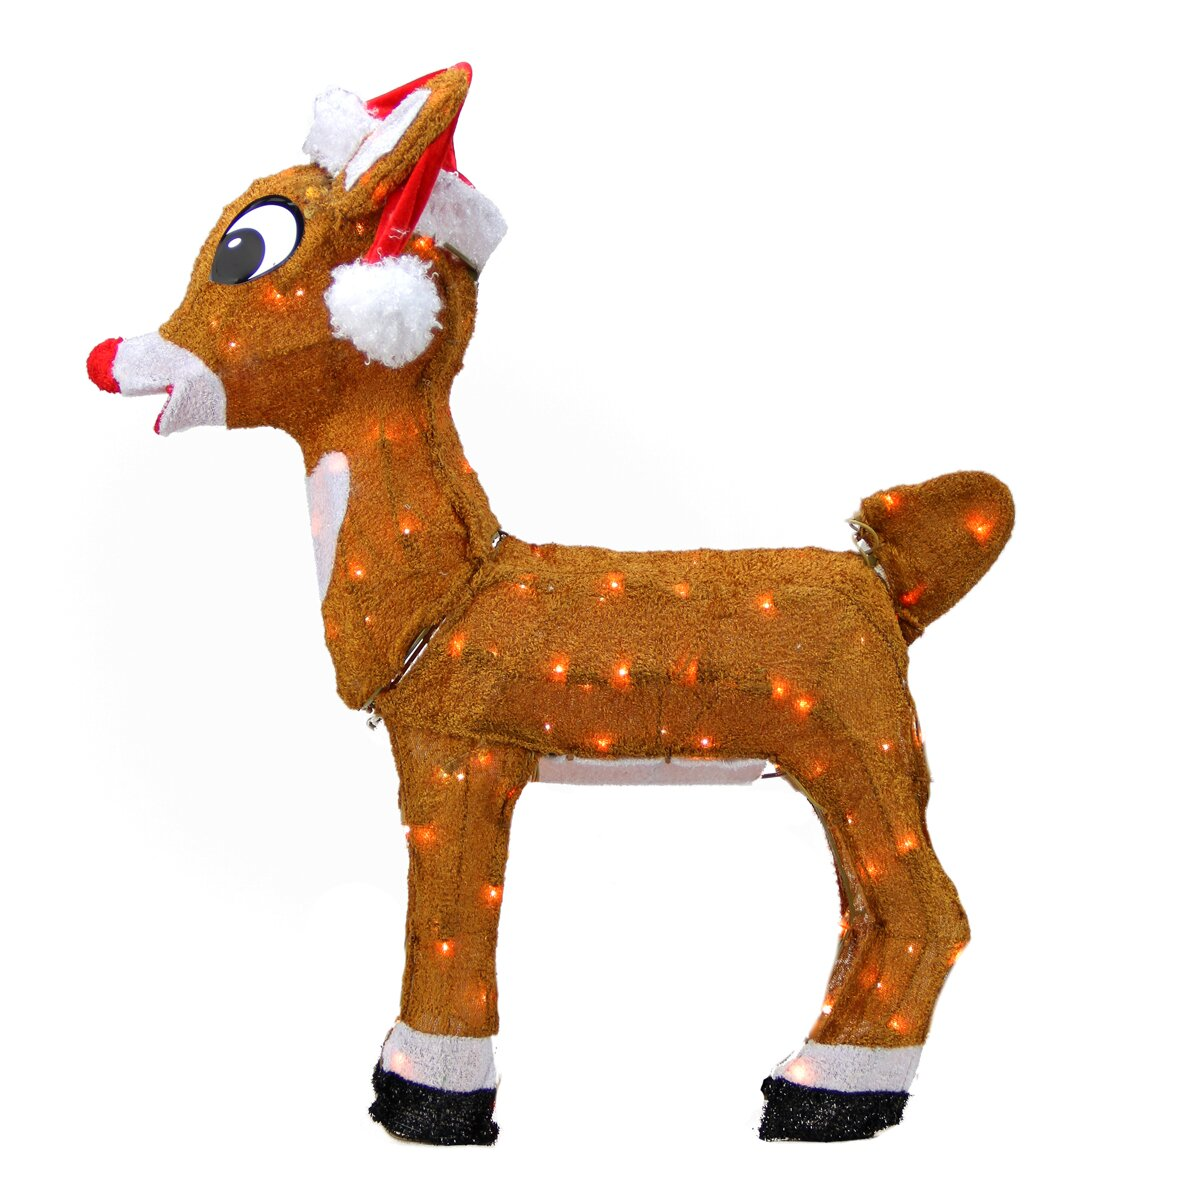 rudolph the red nosed reindeer pre lit in santa hat christmas yard art decoration - Christmas Reindeer Decorations